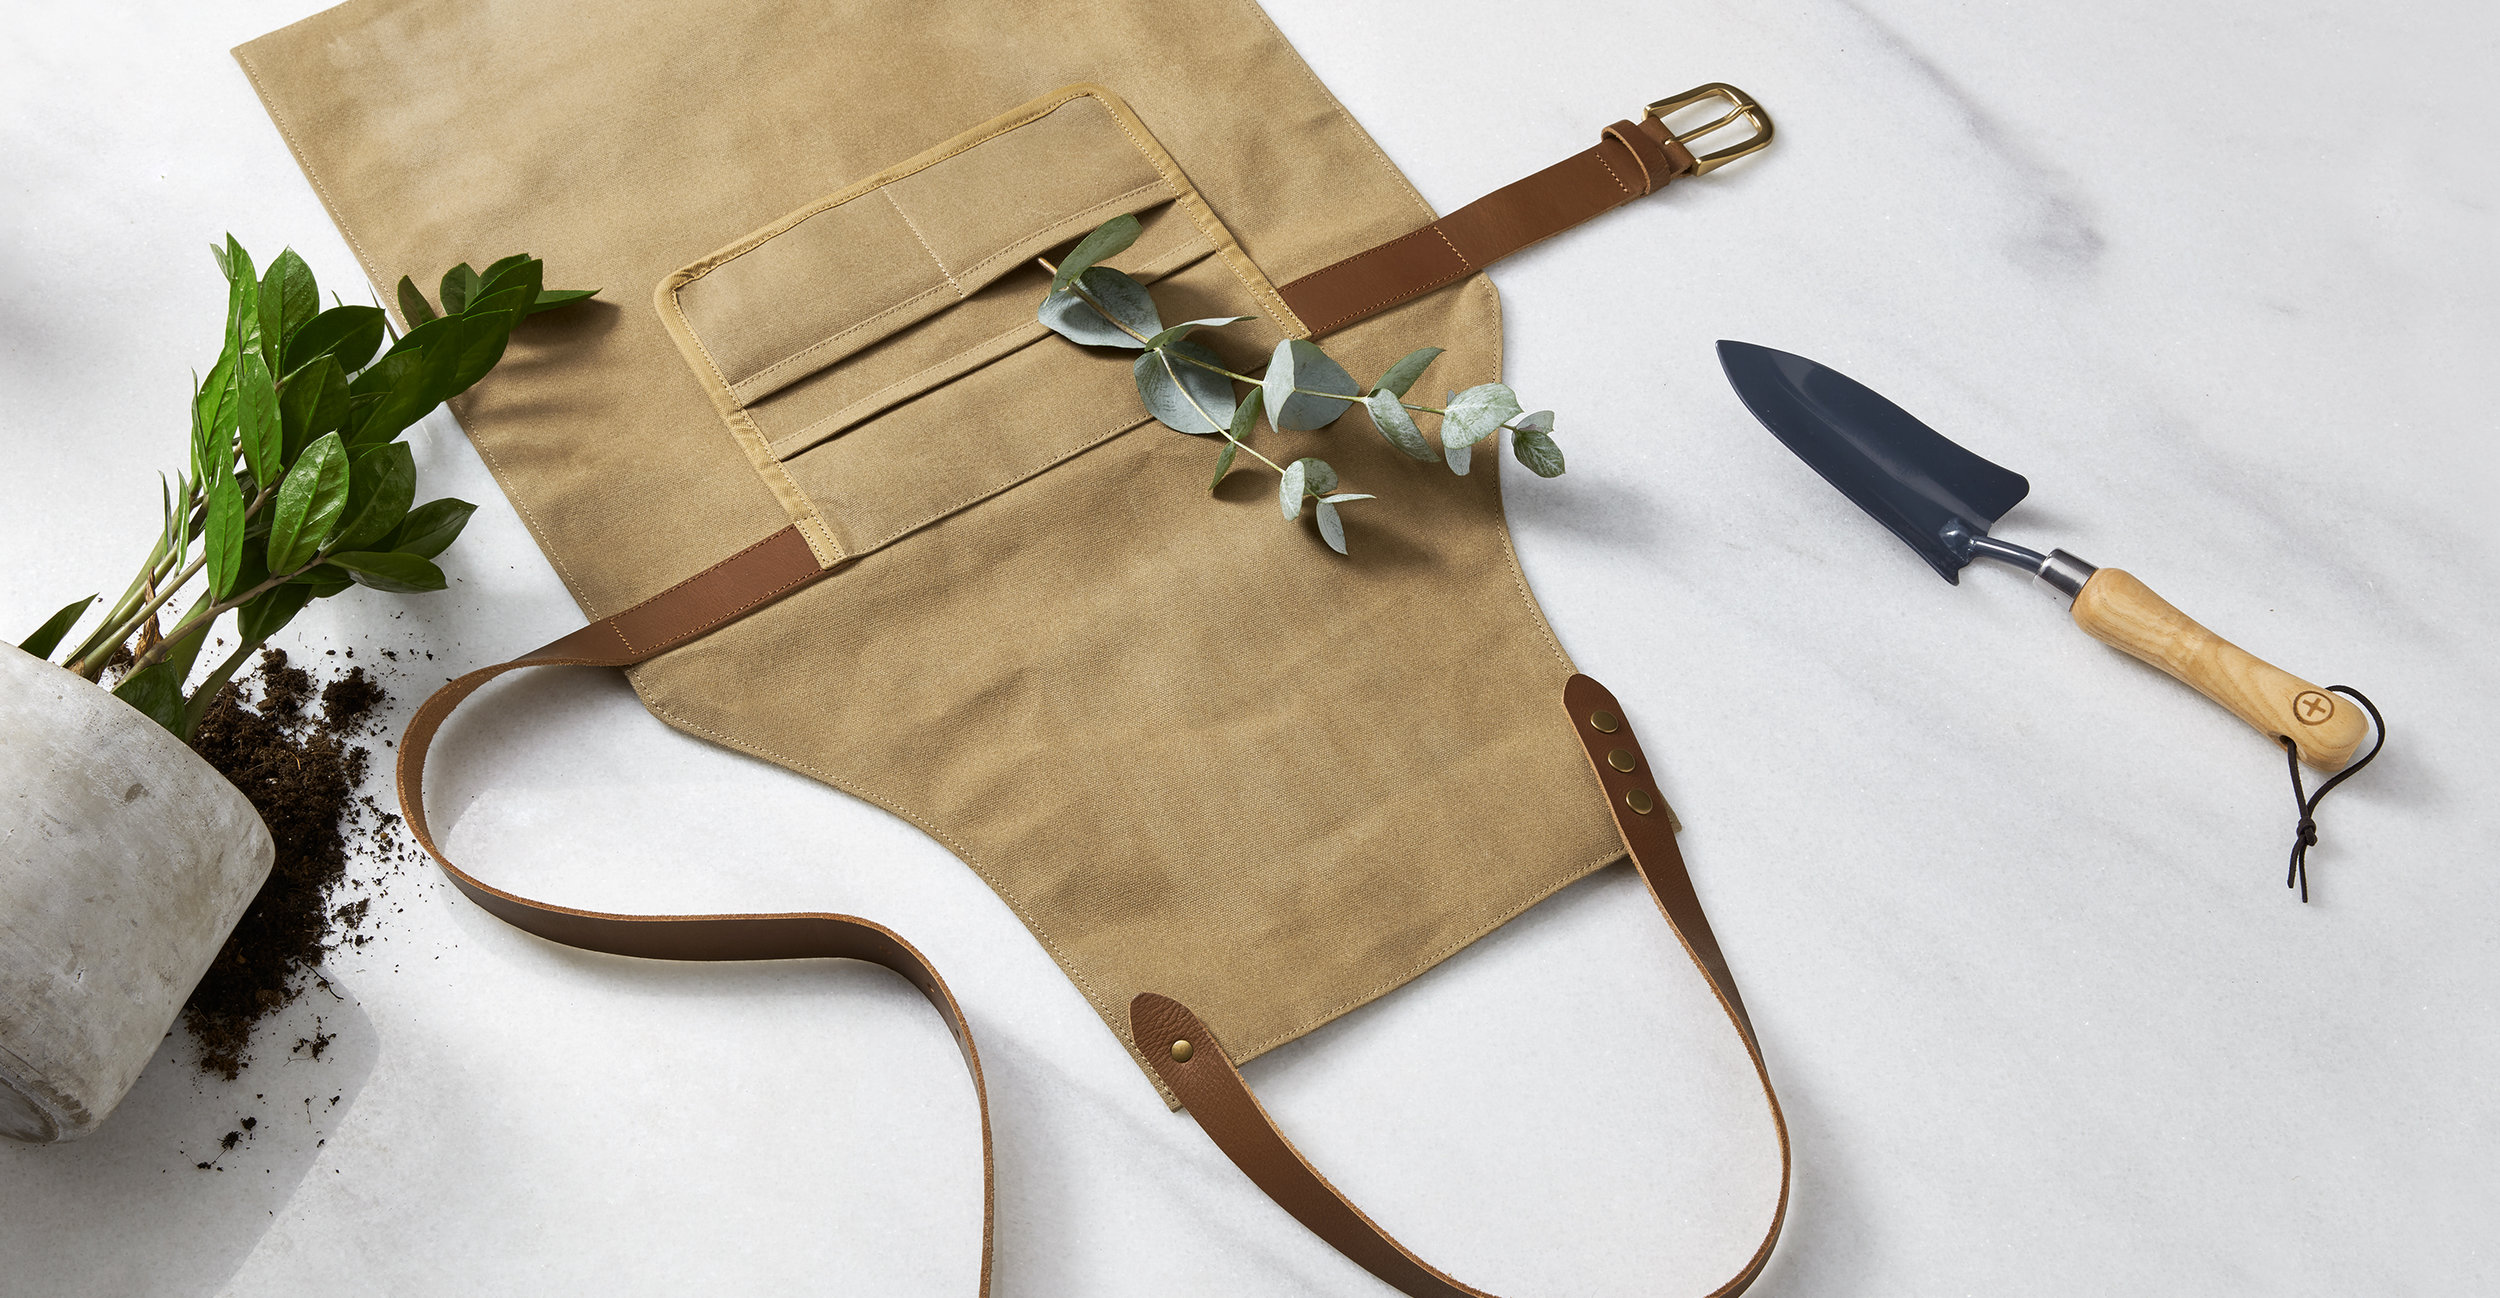 ACCBLY001MUL-UK_Blythe_Garden_Apron_Waxed_Canvas_with_Leather_Straps_LB02.jpg